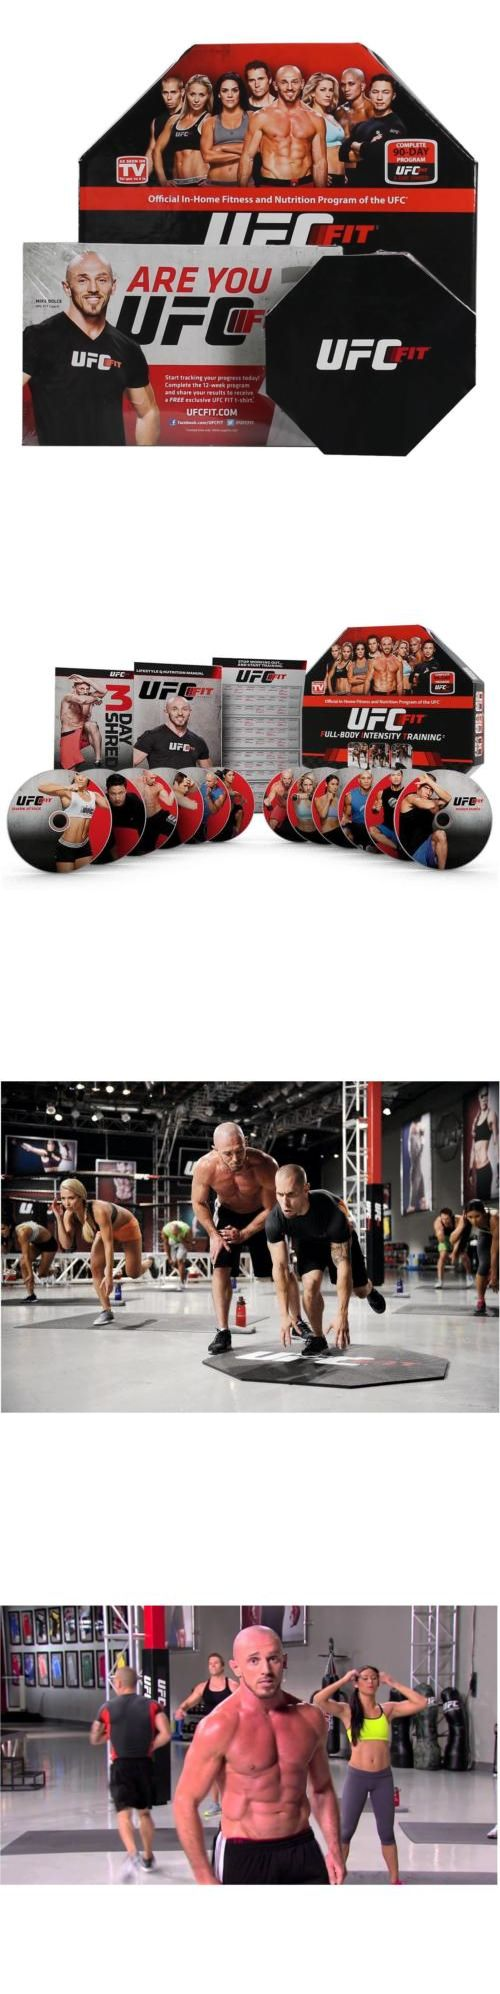 Fitness DVDs 109130: Ufc Fit Workout Dvd The Ultimate Weight Loss And Exercise Video Train Home Chop -> BUY IT NOW ONLY: $56.41 on eBay!